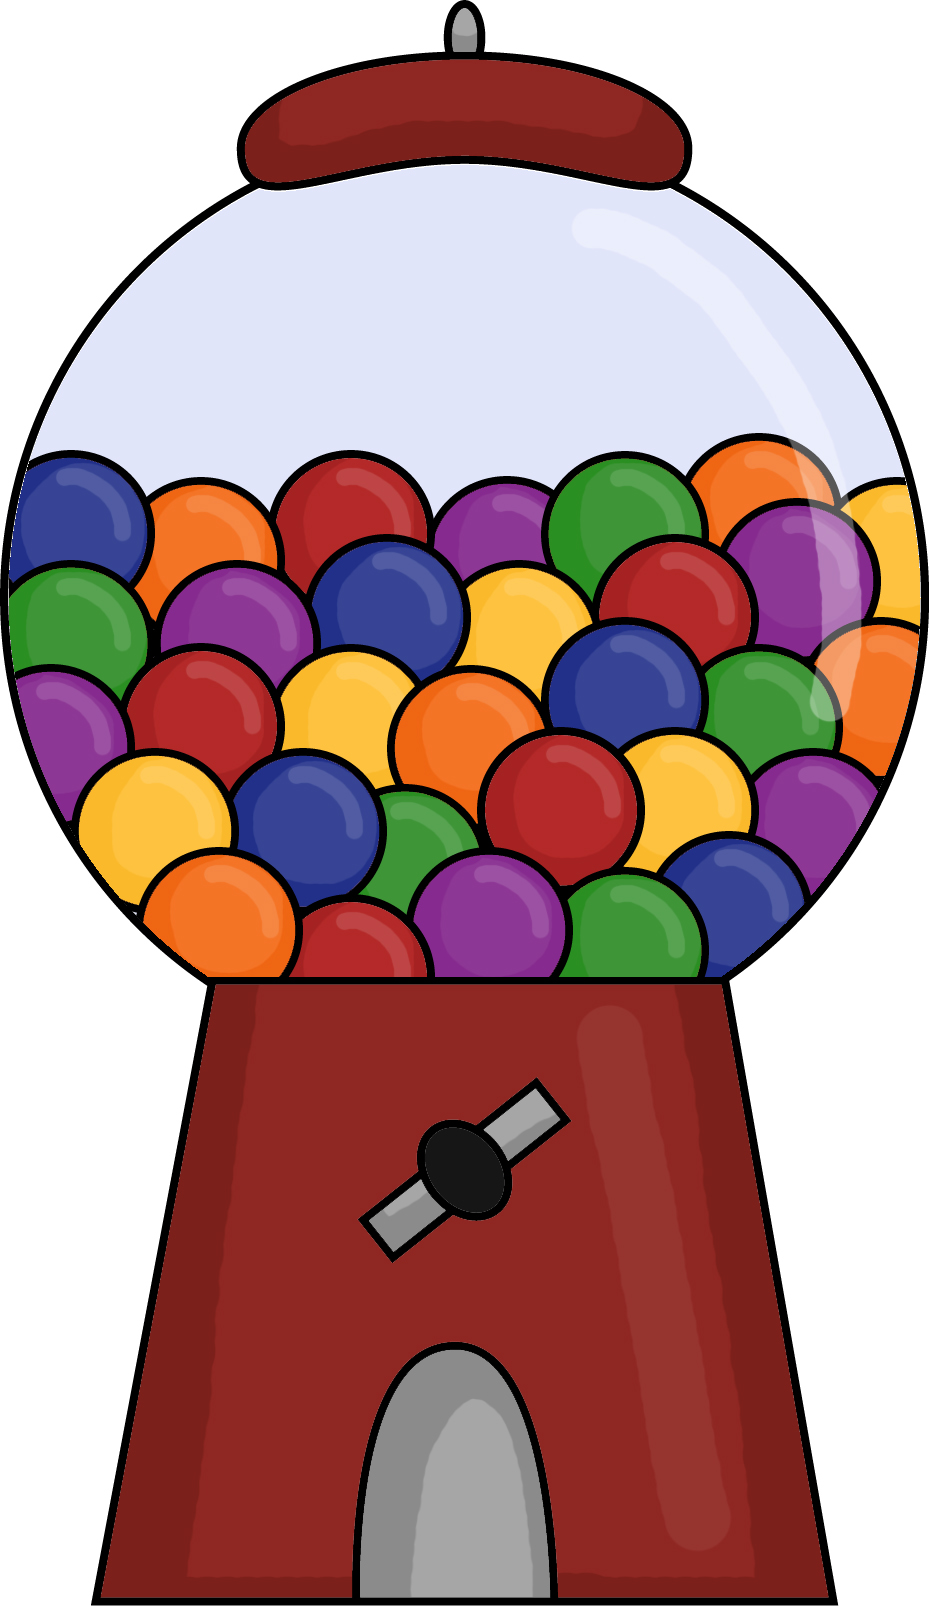 gumball machine pictures cliparts co empty bubble gum machine clip art Bubble Gum Clilpart